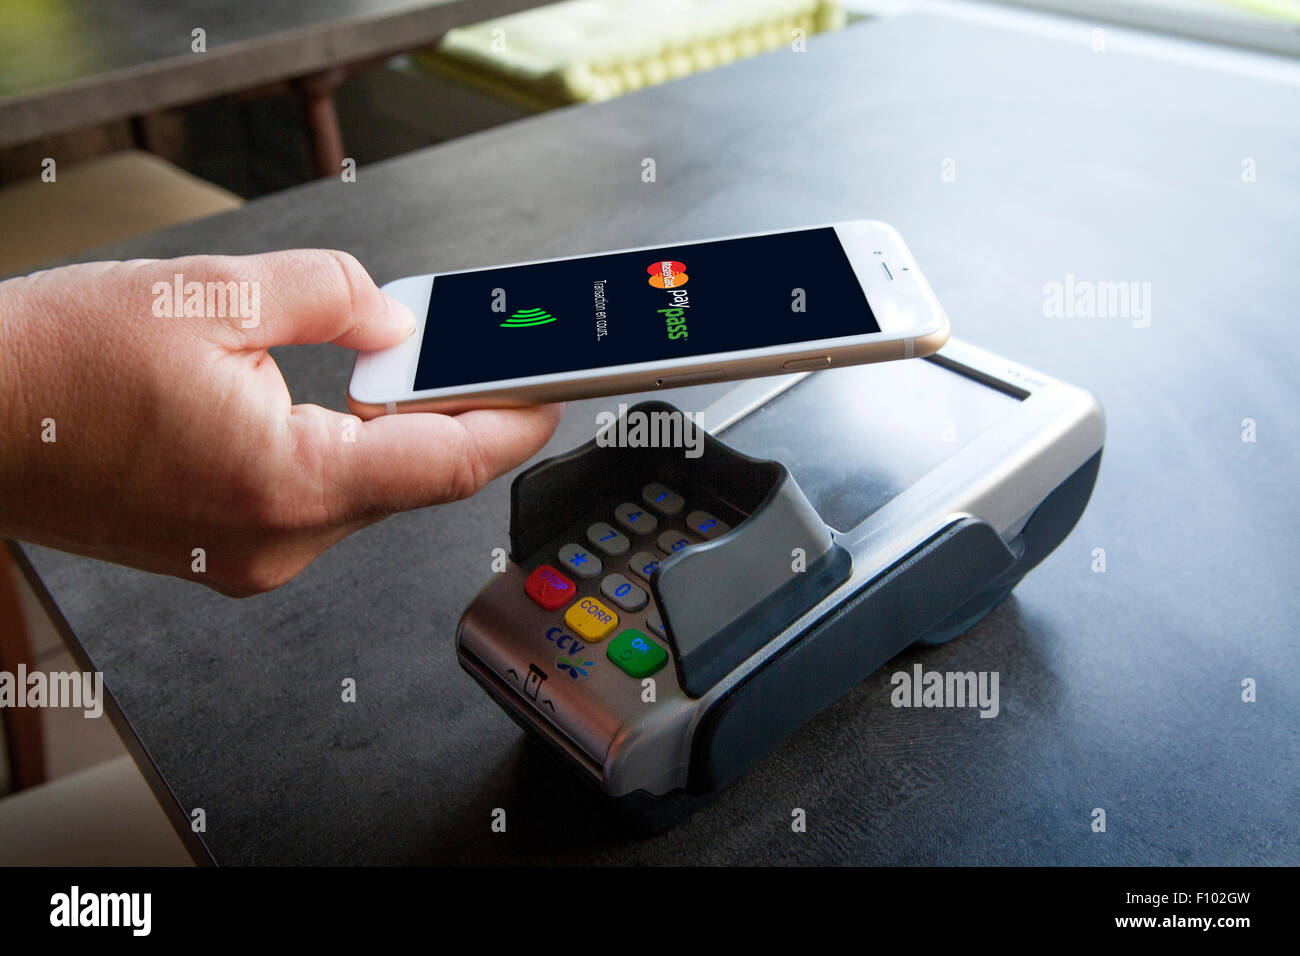 Paiement sans contact Photo Stock